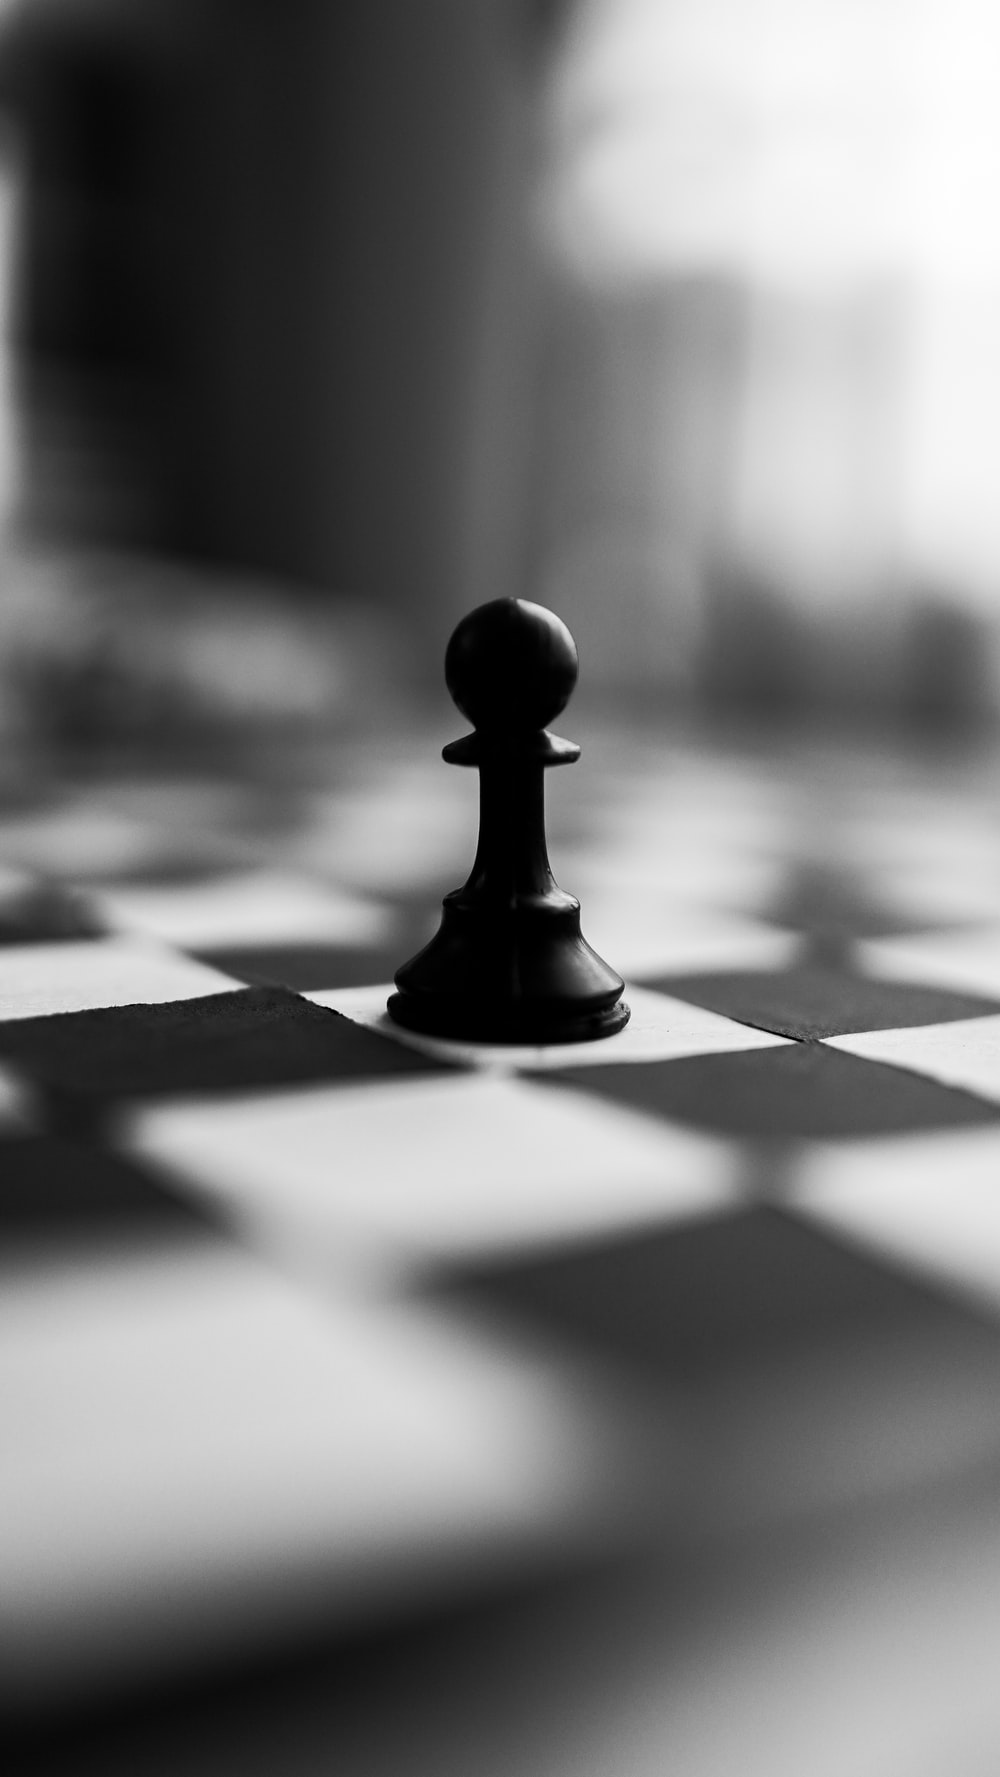 black chess piece on white and black checkered textile